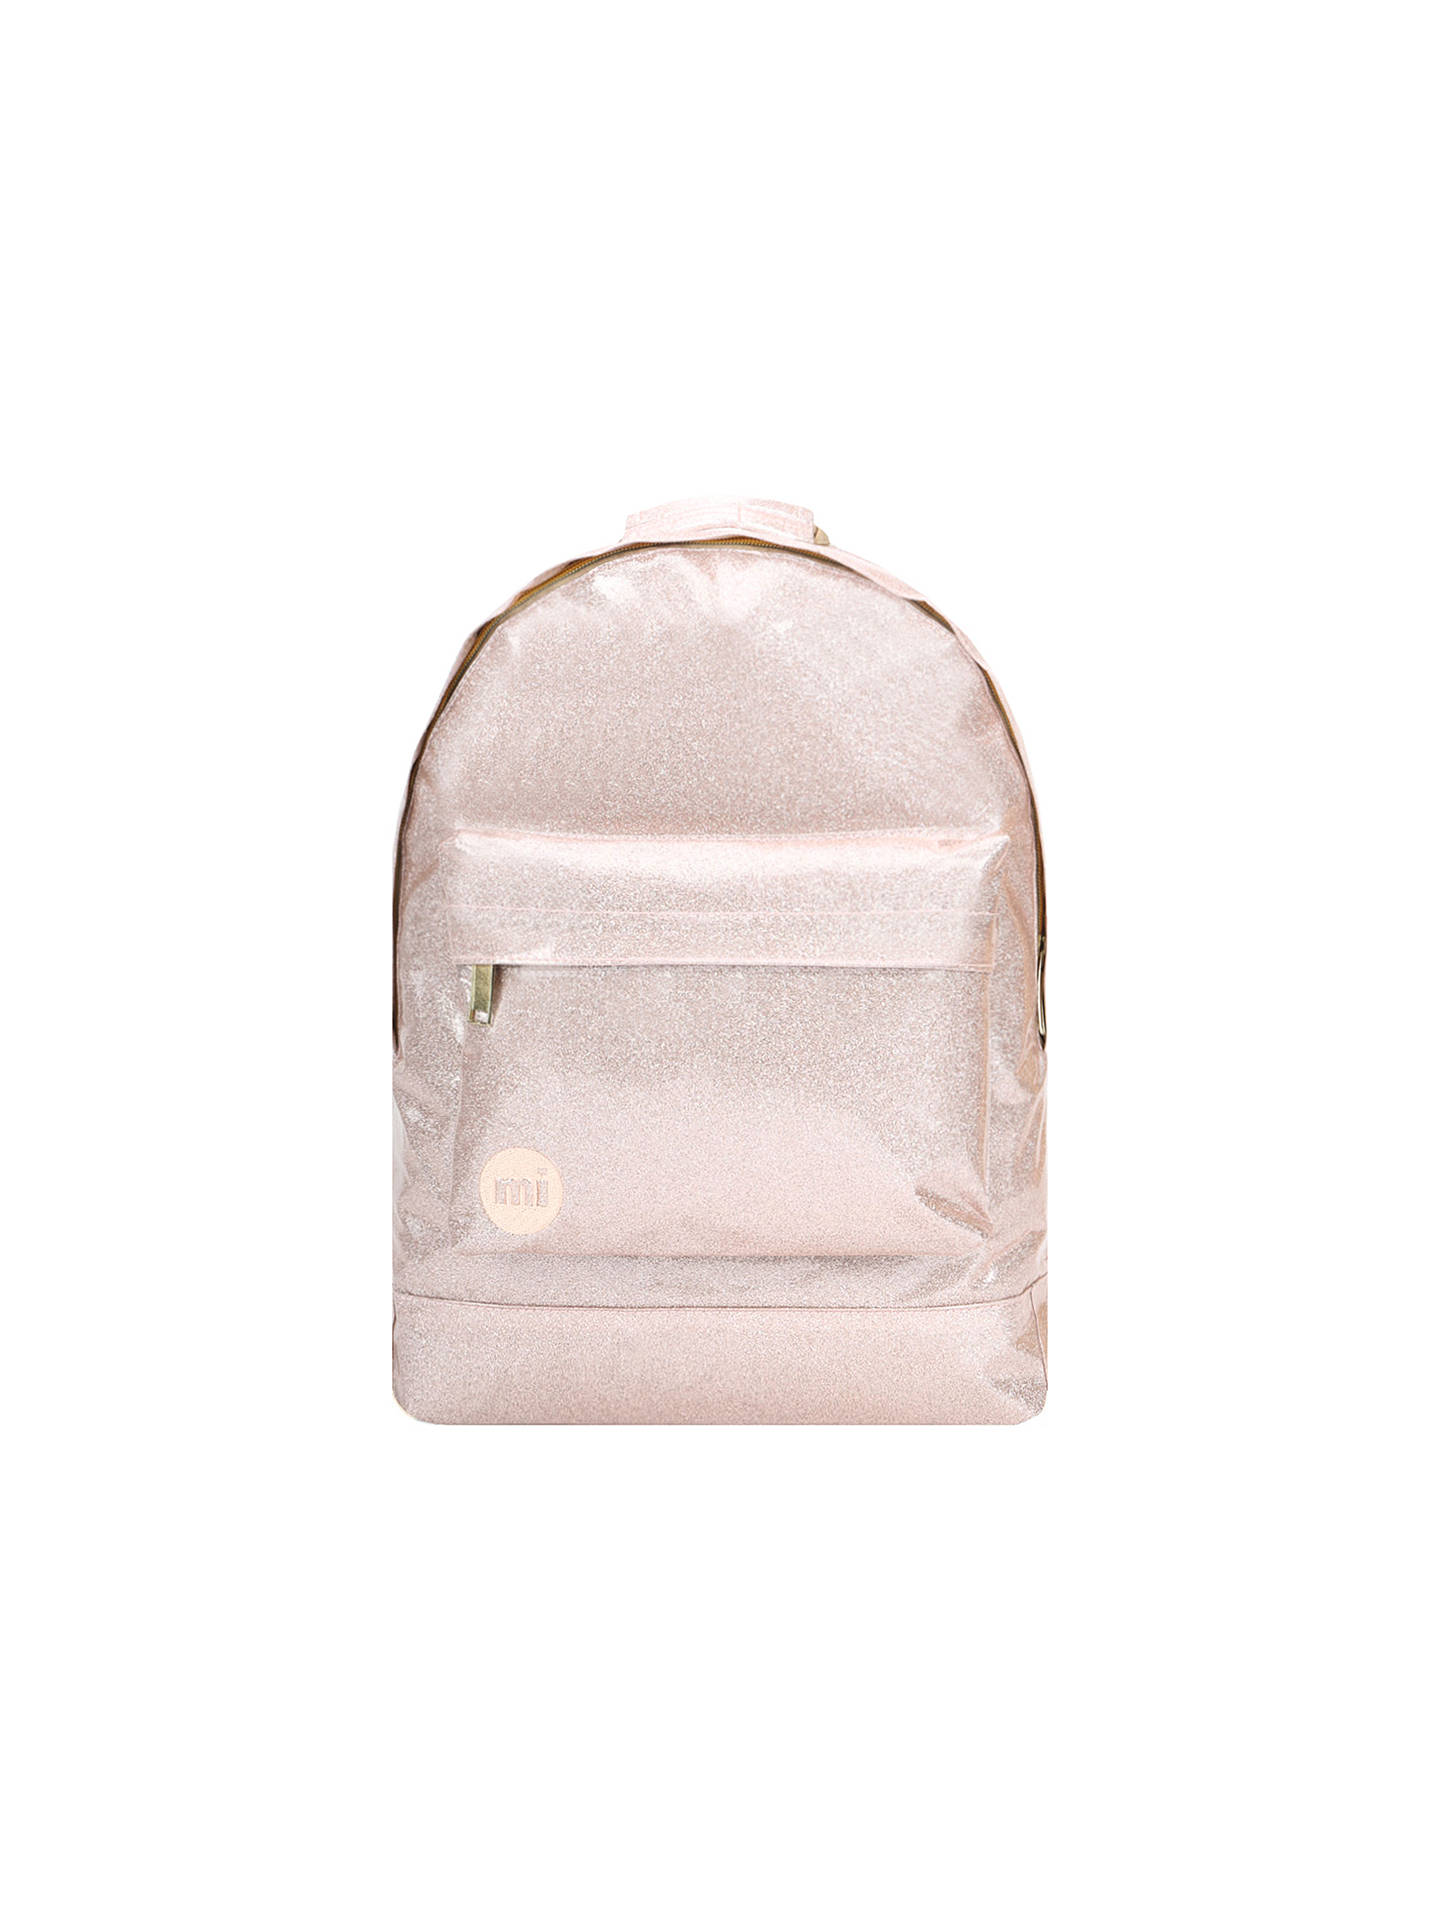 BuyMi-Pac Glitter Backpack, Champagne Online at johnlewis.com